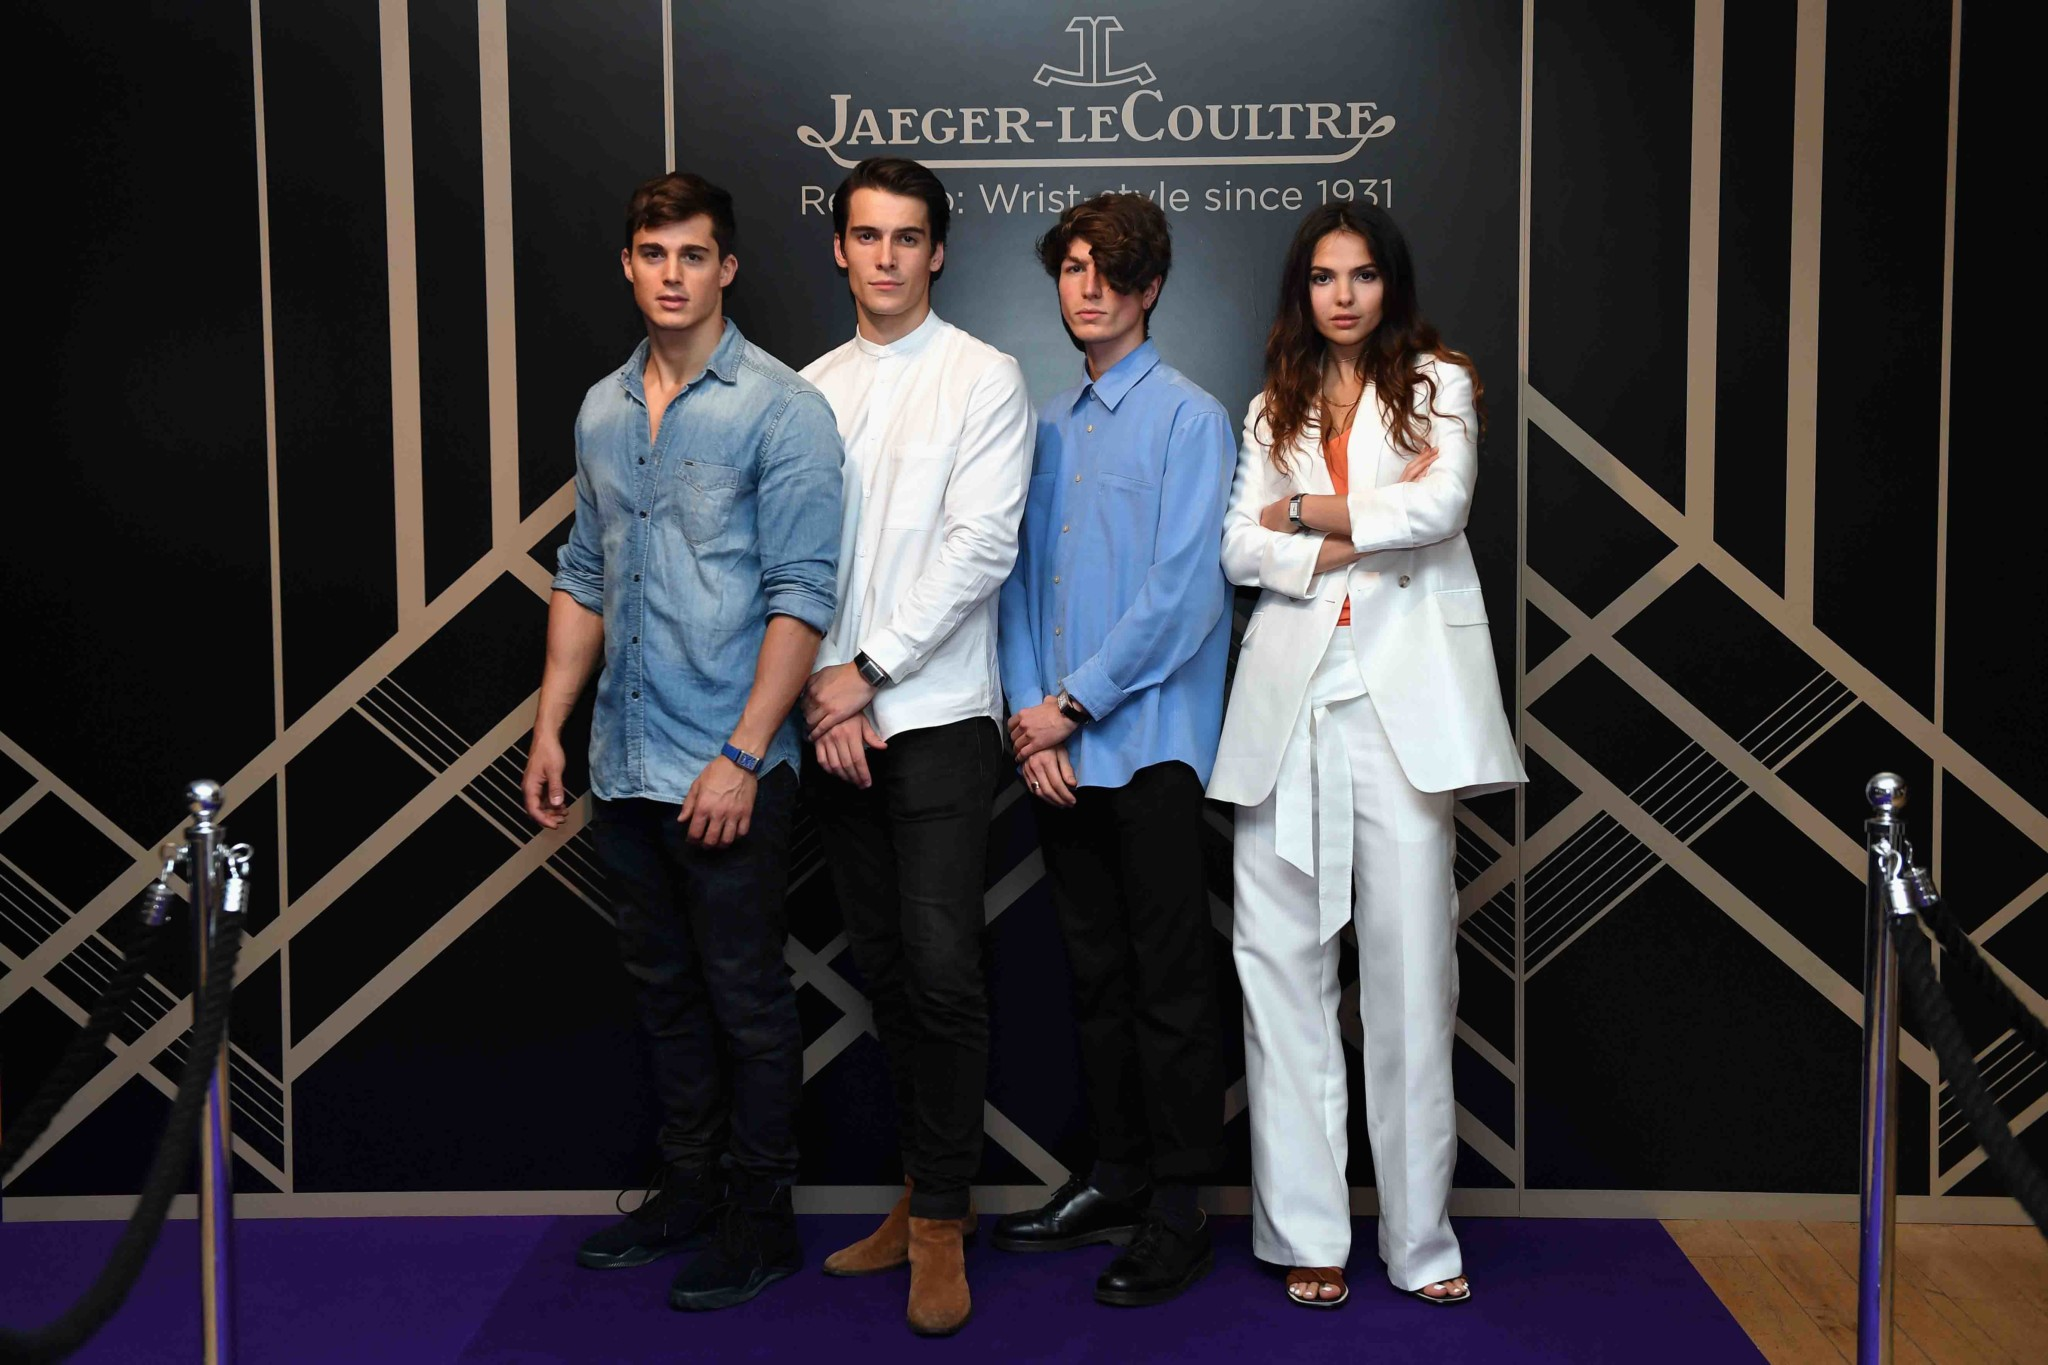 "LONDON, ENGLAND - MAY 31: (L-R) Pietro Boselli, Harry Rowley, Zaki Maoui and Doina Ciobanu attend Jaeger-LeCoultre & Christie's ""Roaring 20's, Reverso 30's"" Party at Christie's South Kensington on May 31, 2017 in London, England. (Photo by Chris J Ratcliffe/Getty Images for Jaeger-LeCoultre) *** Local Caption *** Pietro Boselli; Harry Rowley; Zaki Maoui; Doina Ciobanu"